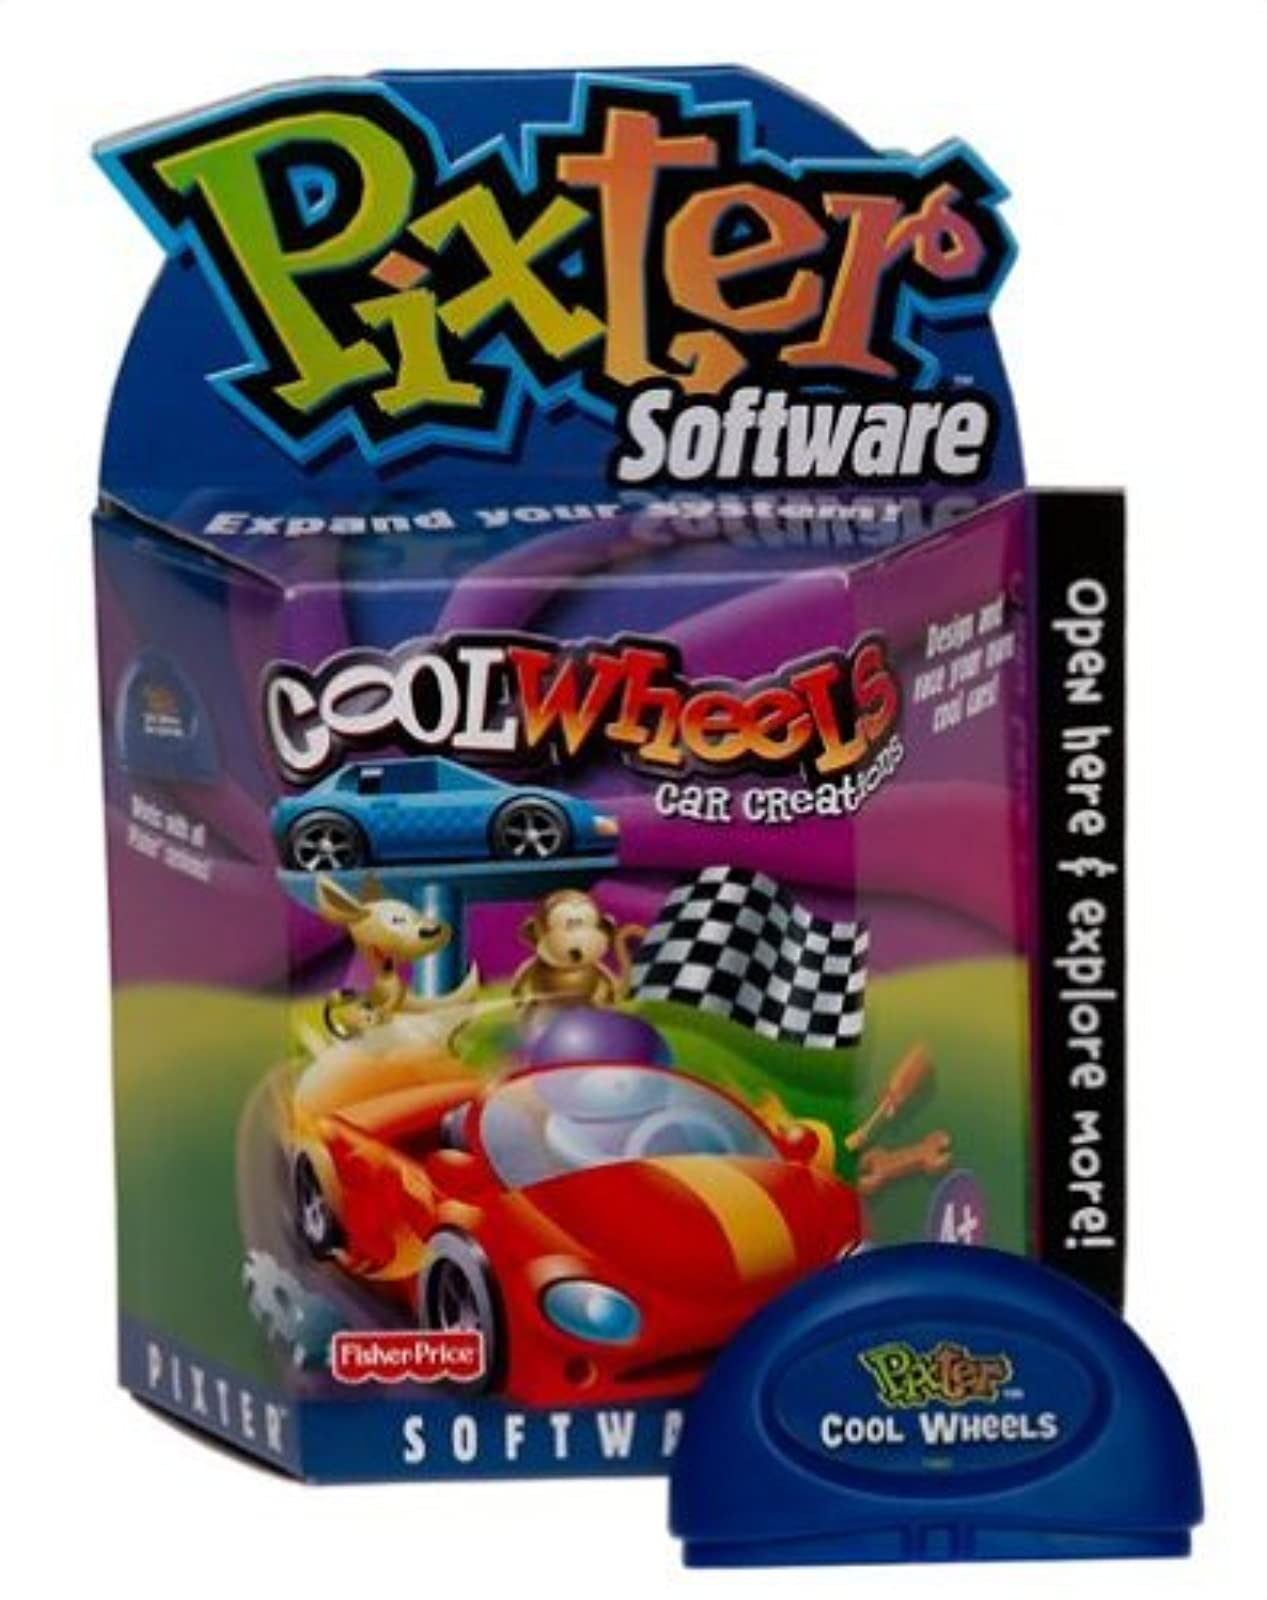 Fisher-Price Pixter Cool Wheels Car Creations Software By Pixter Portable System